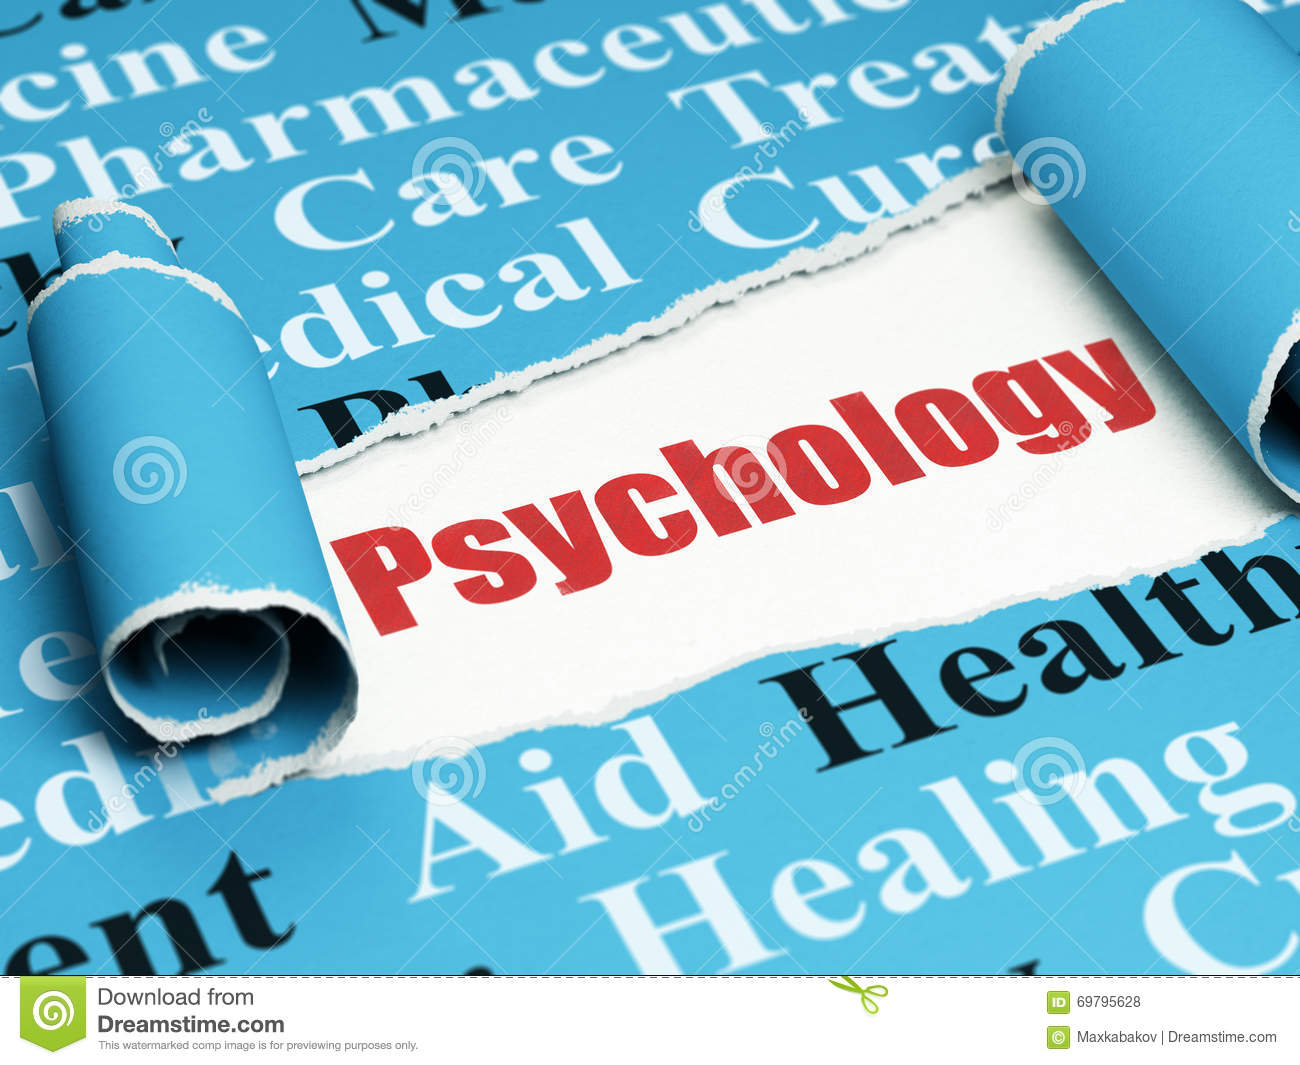 010 Research Paper Psychology On Dreams Health Concept Red Text Under Piece Torn Curled Blue Tag Cloud Rendering Singular Articles Topics Full